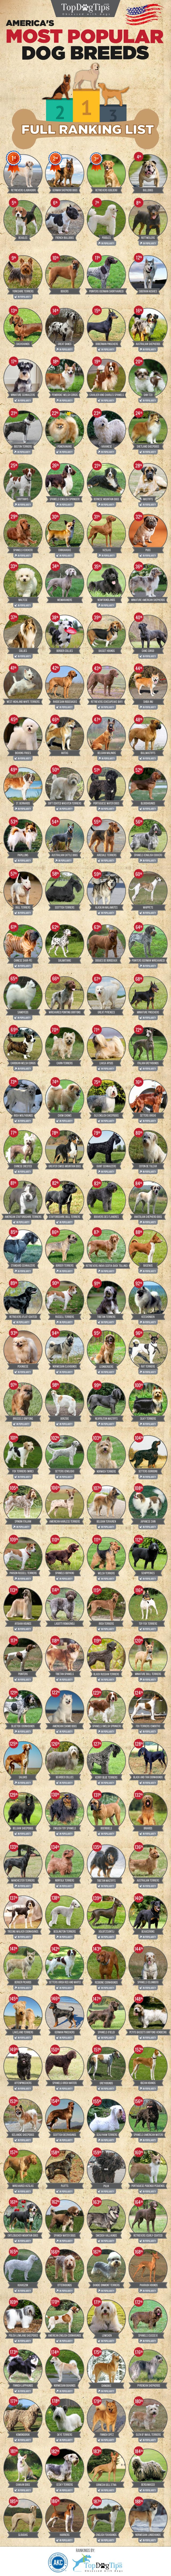 Most Popular Dog Breeds in America (Infographic)